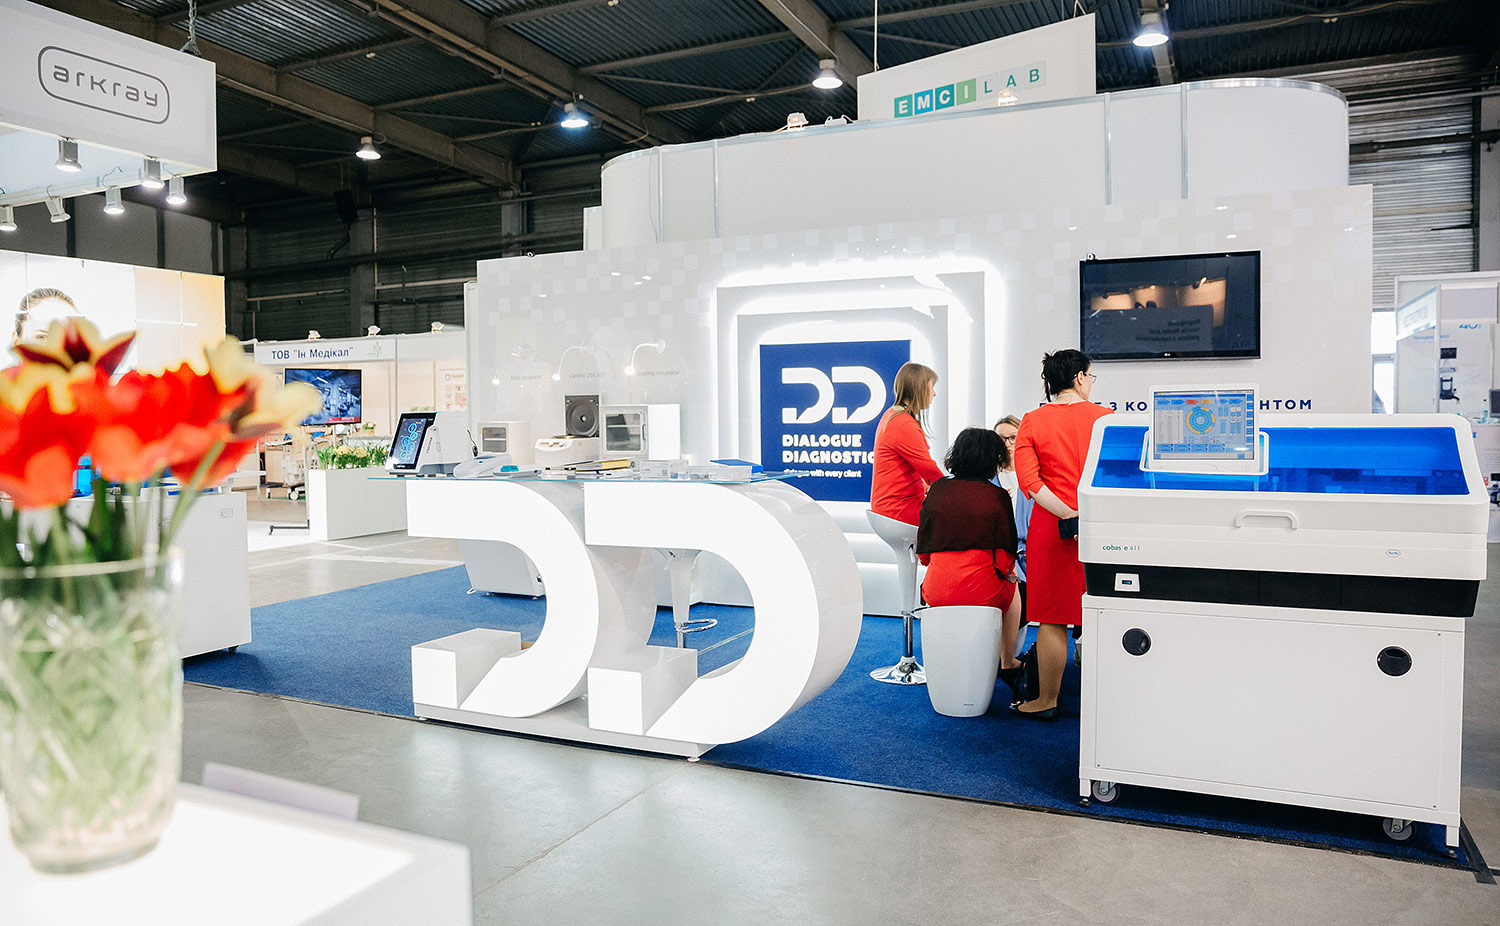 The creative exhibition stand. The best stand at the medical exhibition. The stylish design of the exhibition stand for the Dialogue Diagnostics company.